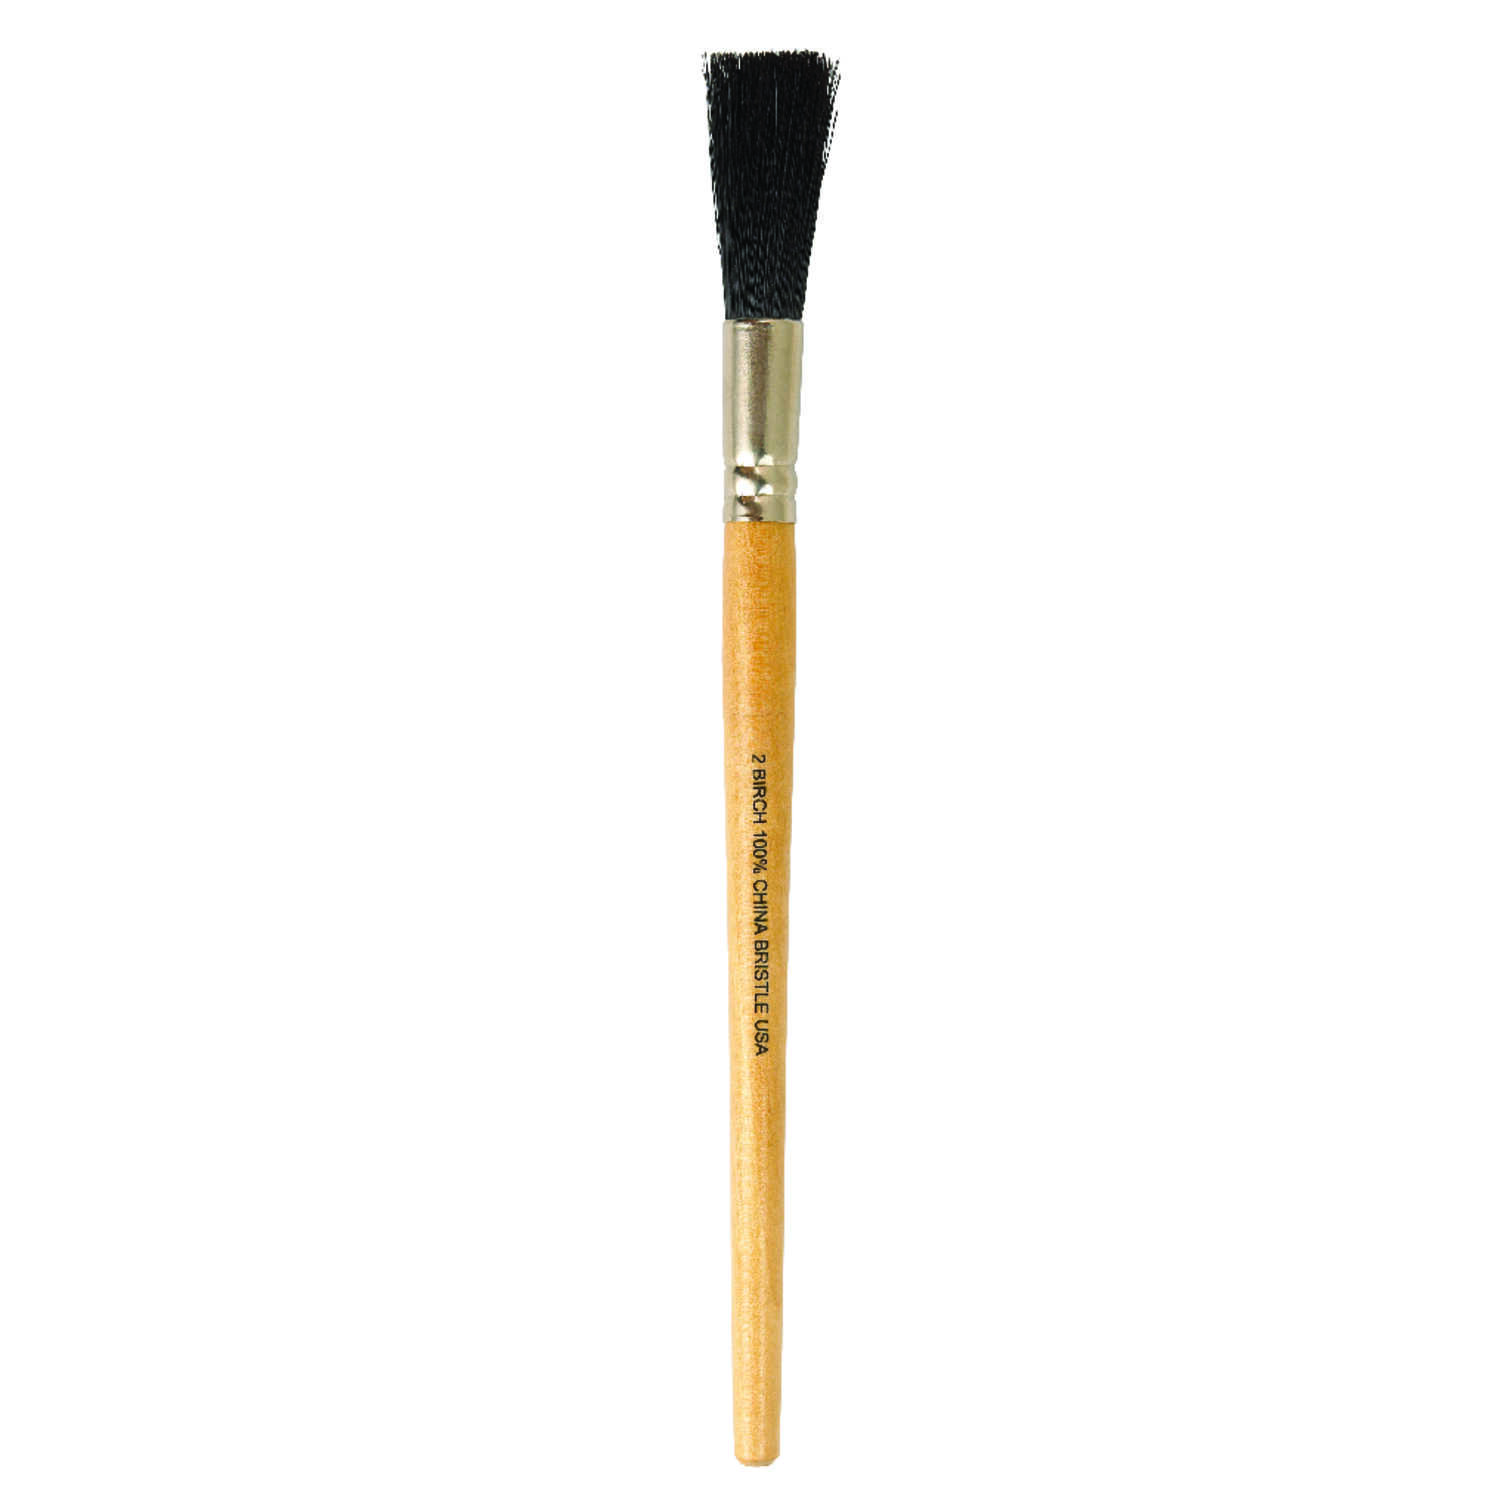 Purdy  No. 2  W Oval Sash  Black China Bristle  Paint Brush